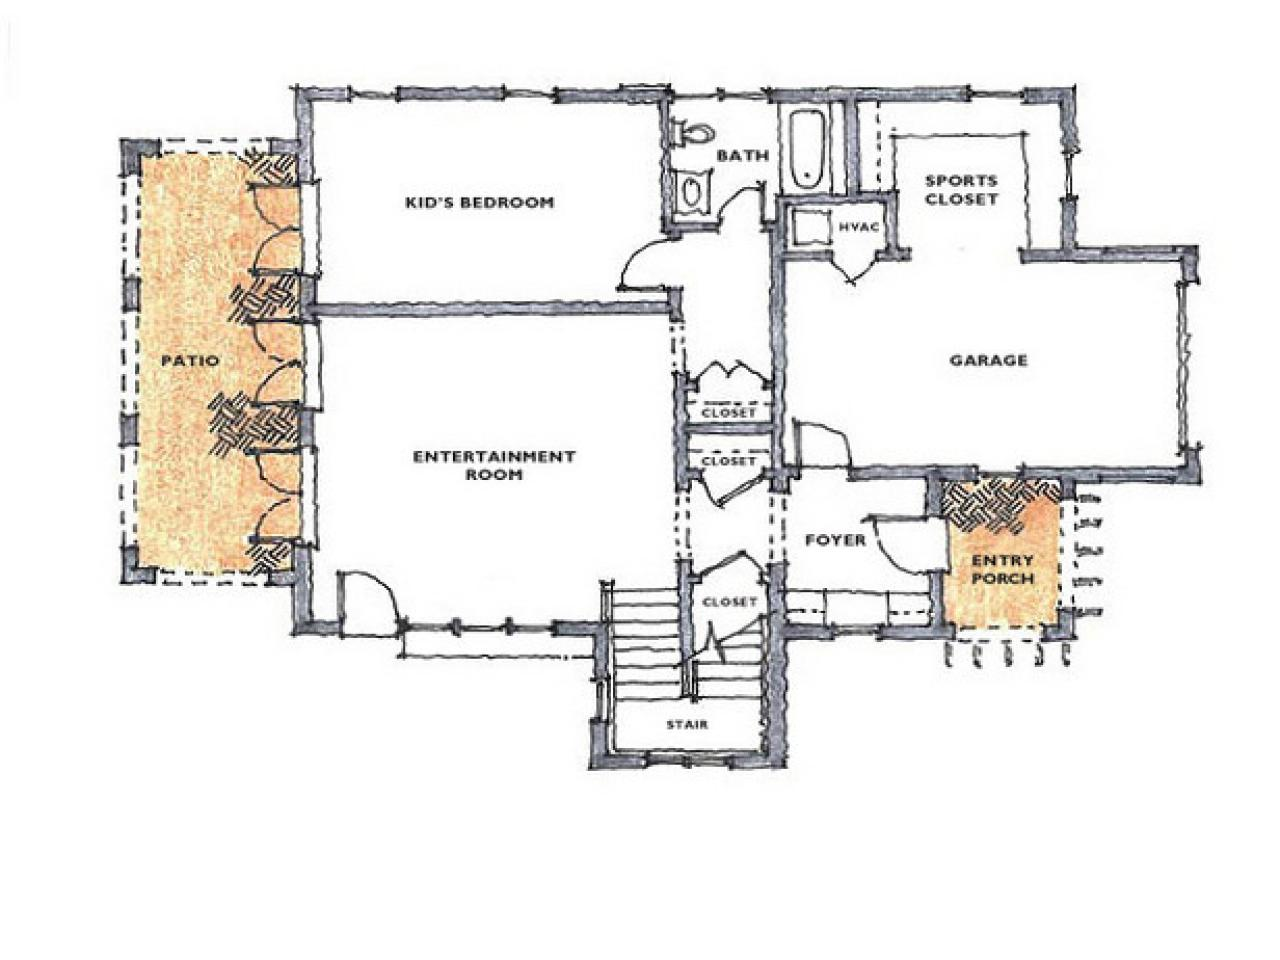 floor plan for hgtv dream home 2008 hgtv dream home 2008